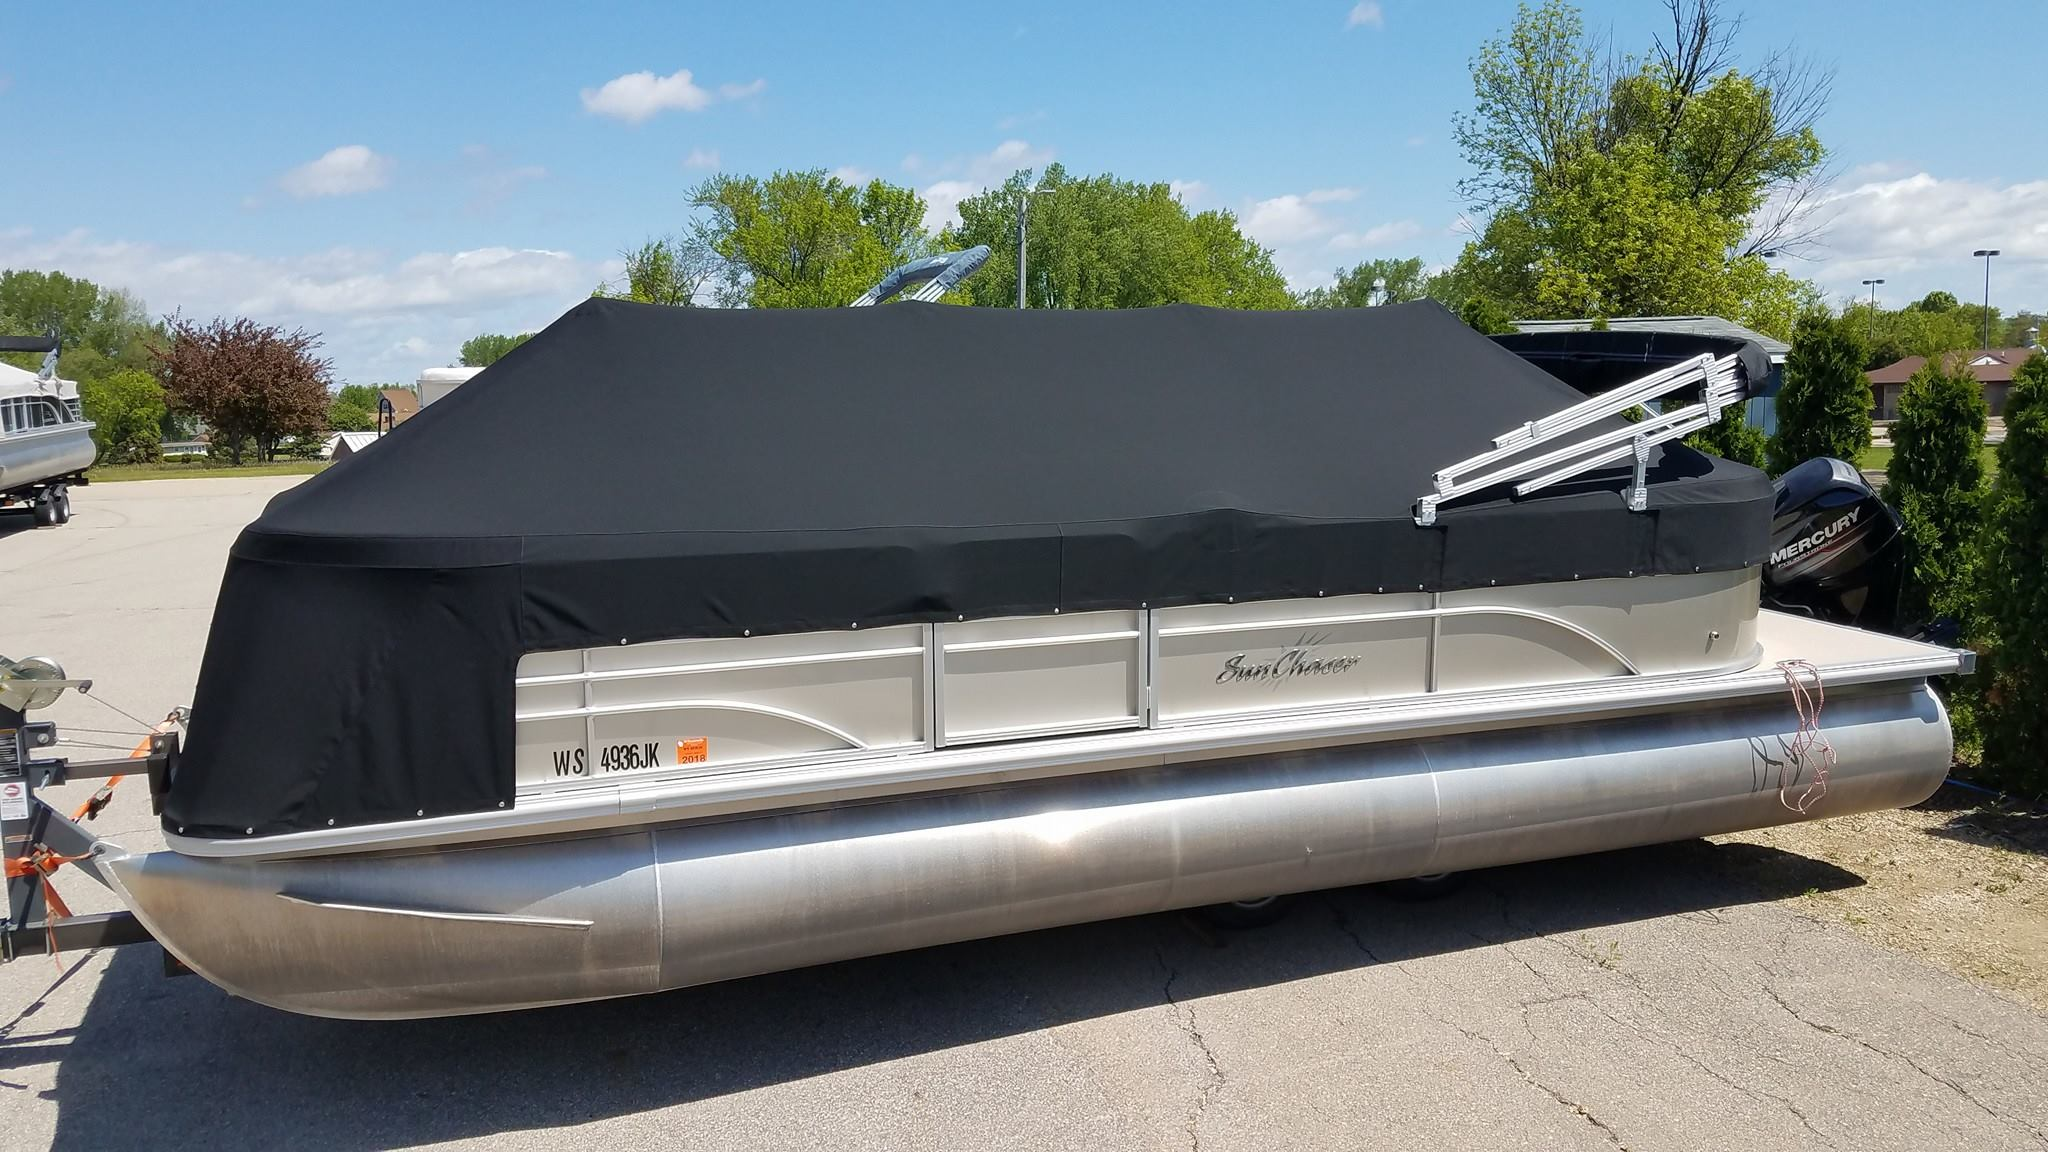 Custom Sunbrella Boat Cover: Pontoon playpen cover with front extension and cutouts and velcro flaps for bimini top frame